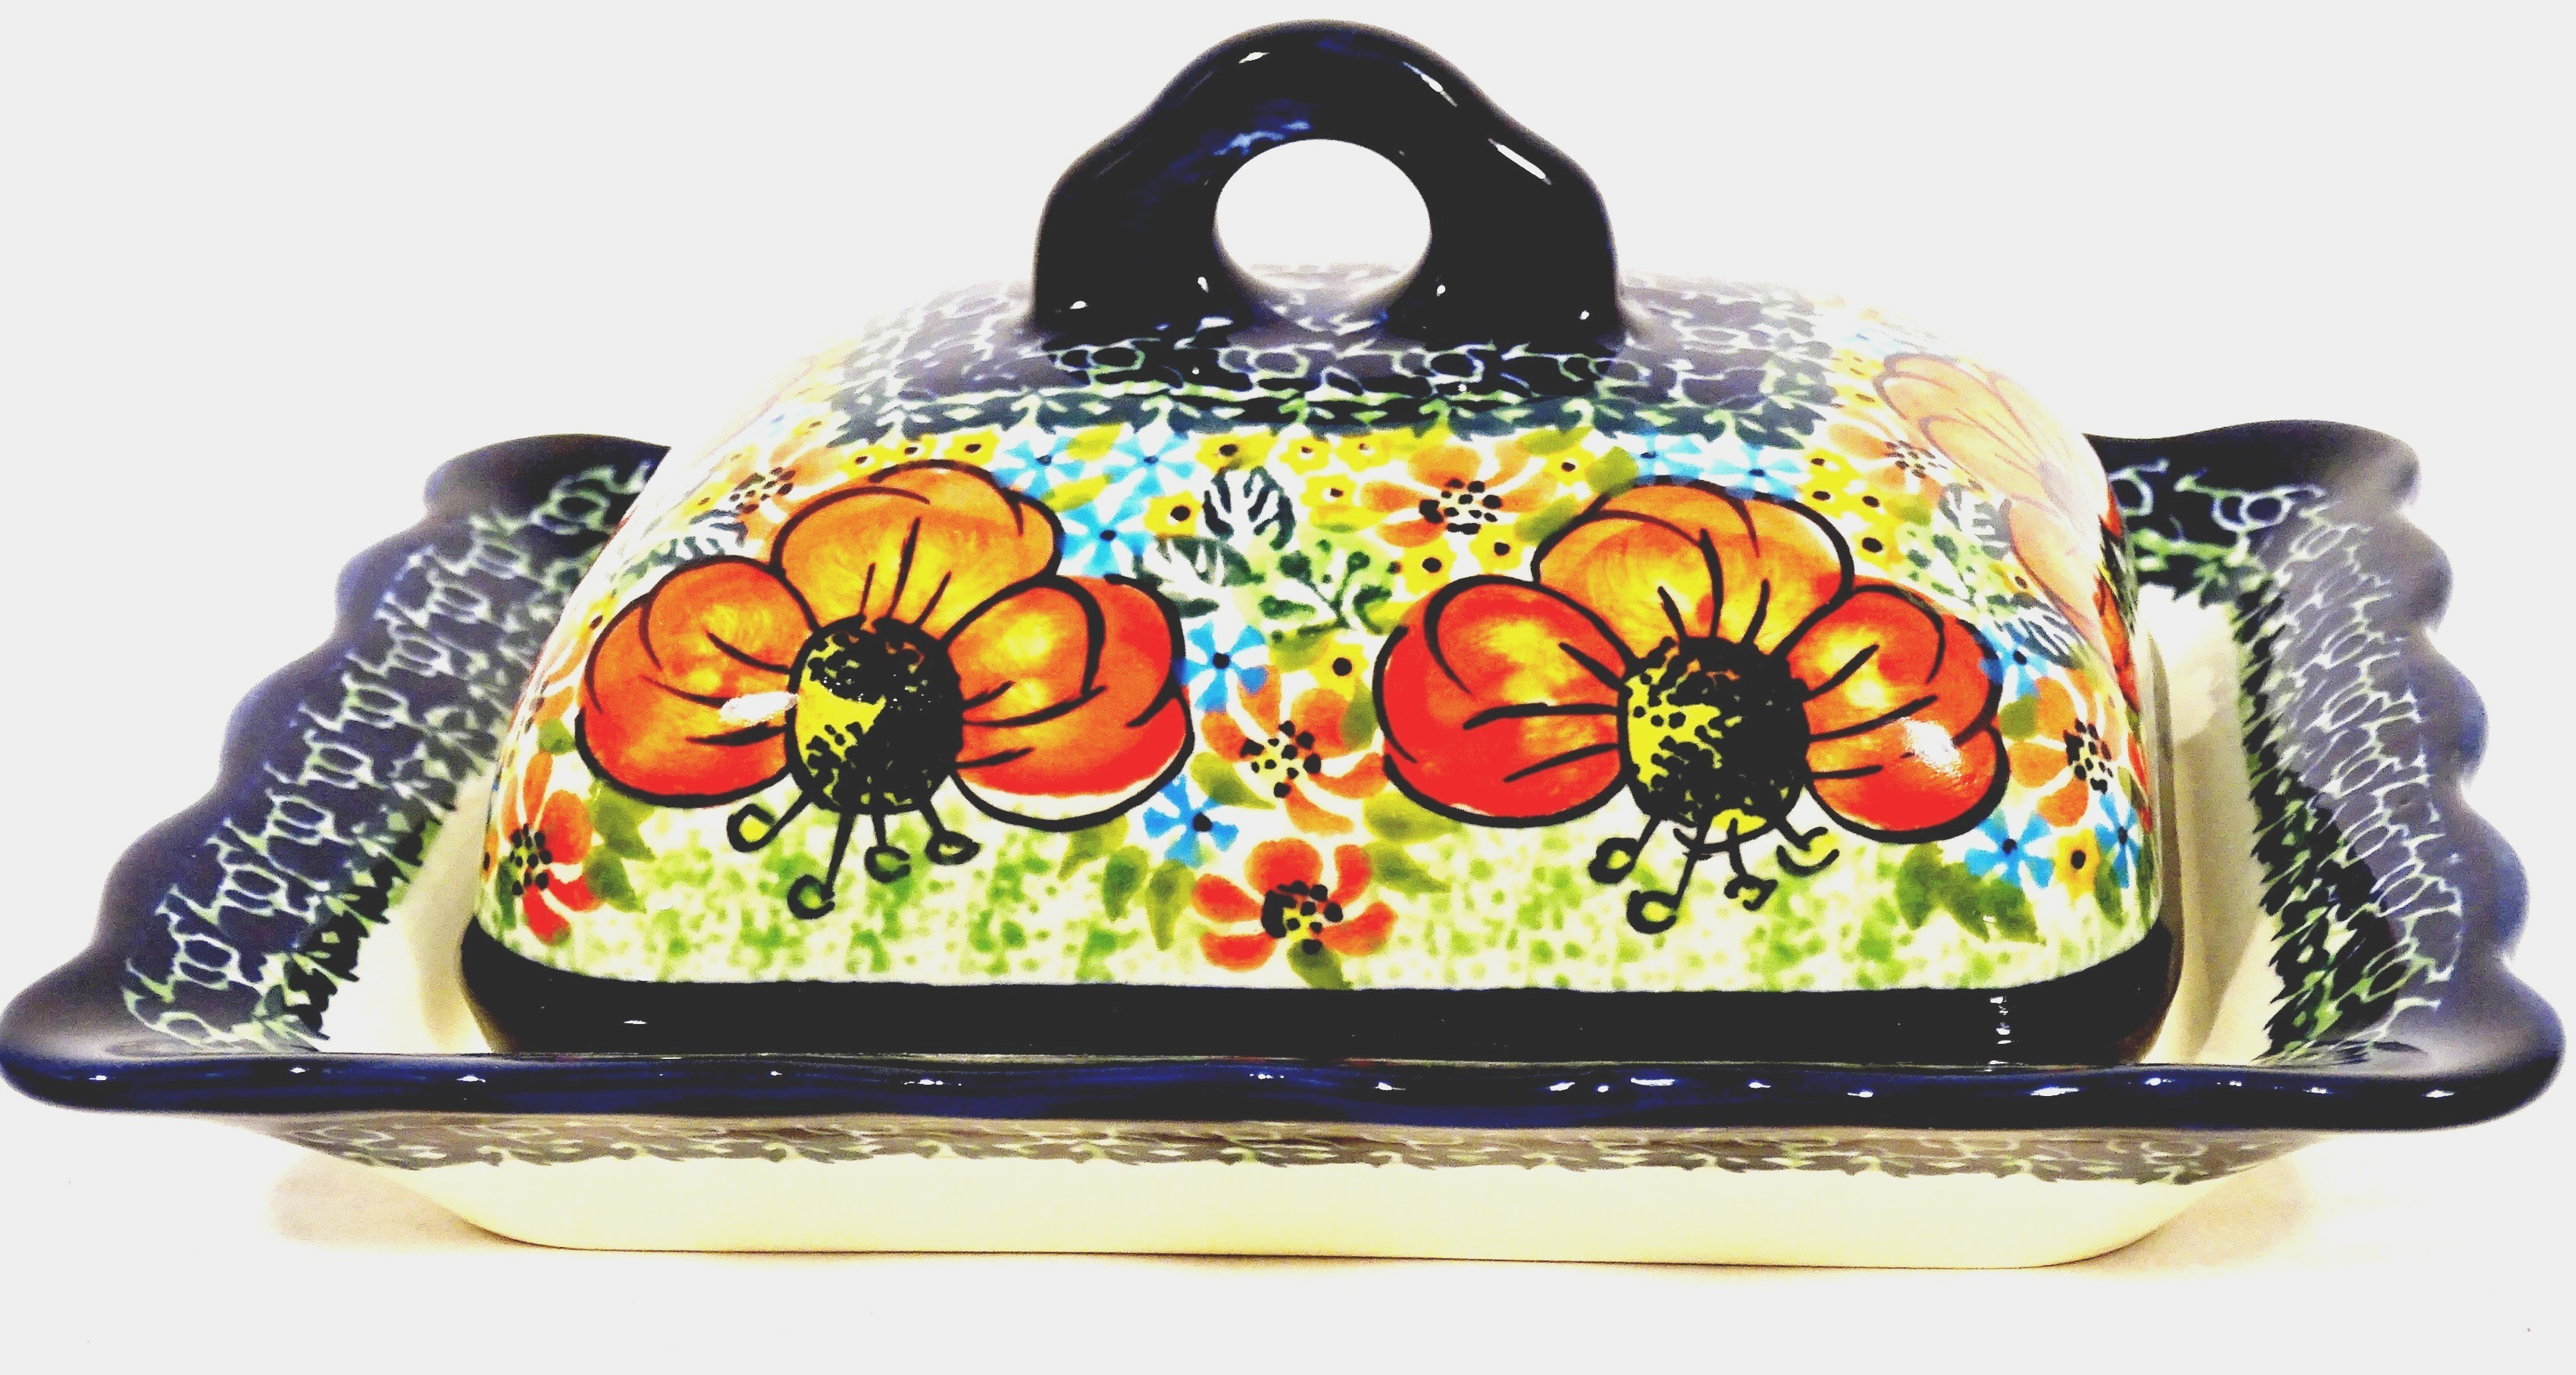 Pottery Avenue Fancy Scalloped Covered Butter Dish - 1568-296AR Champagne